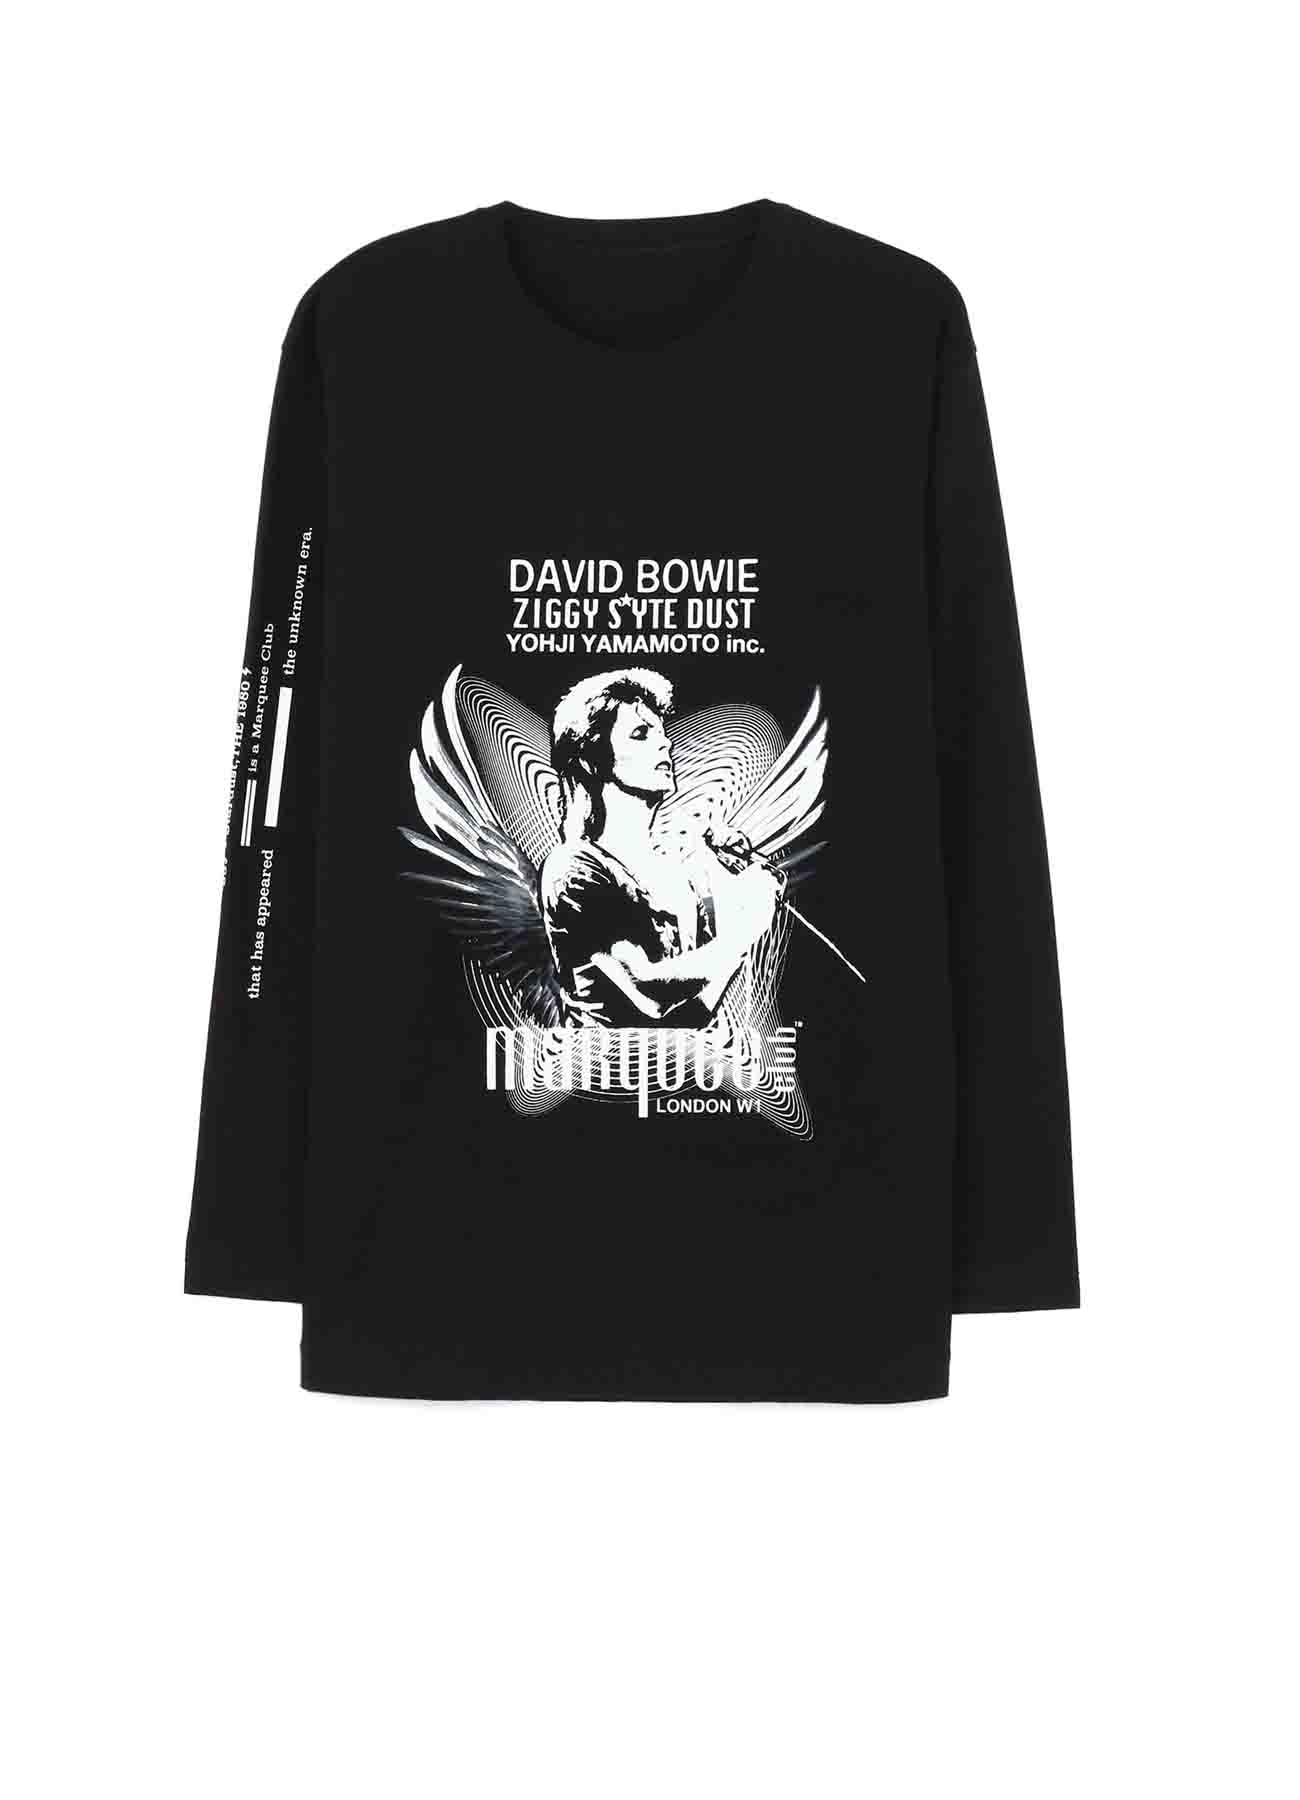 S'YTE × marquee club(R) ZIGGY S'YTE DUST Of Angel Long Sleeve T-shirt